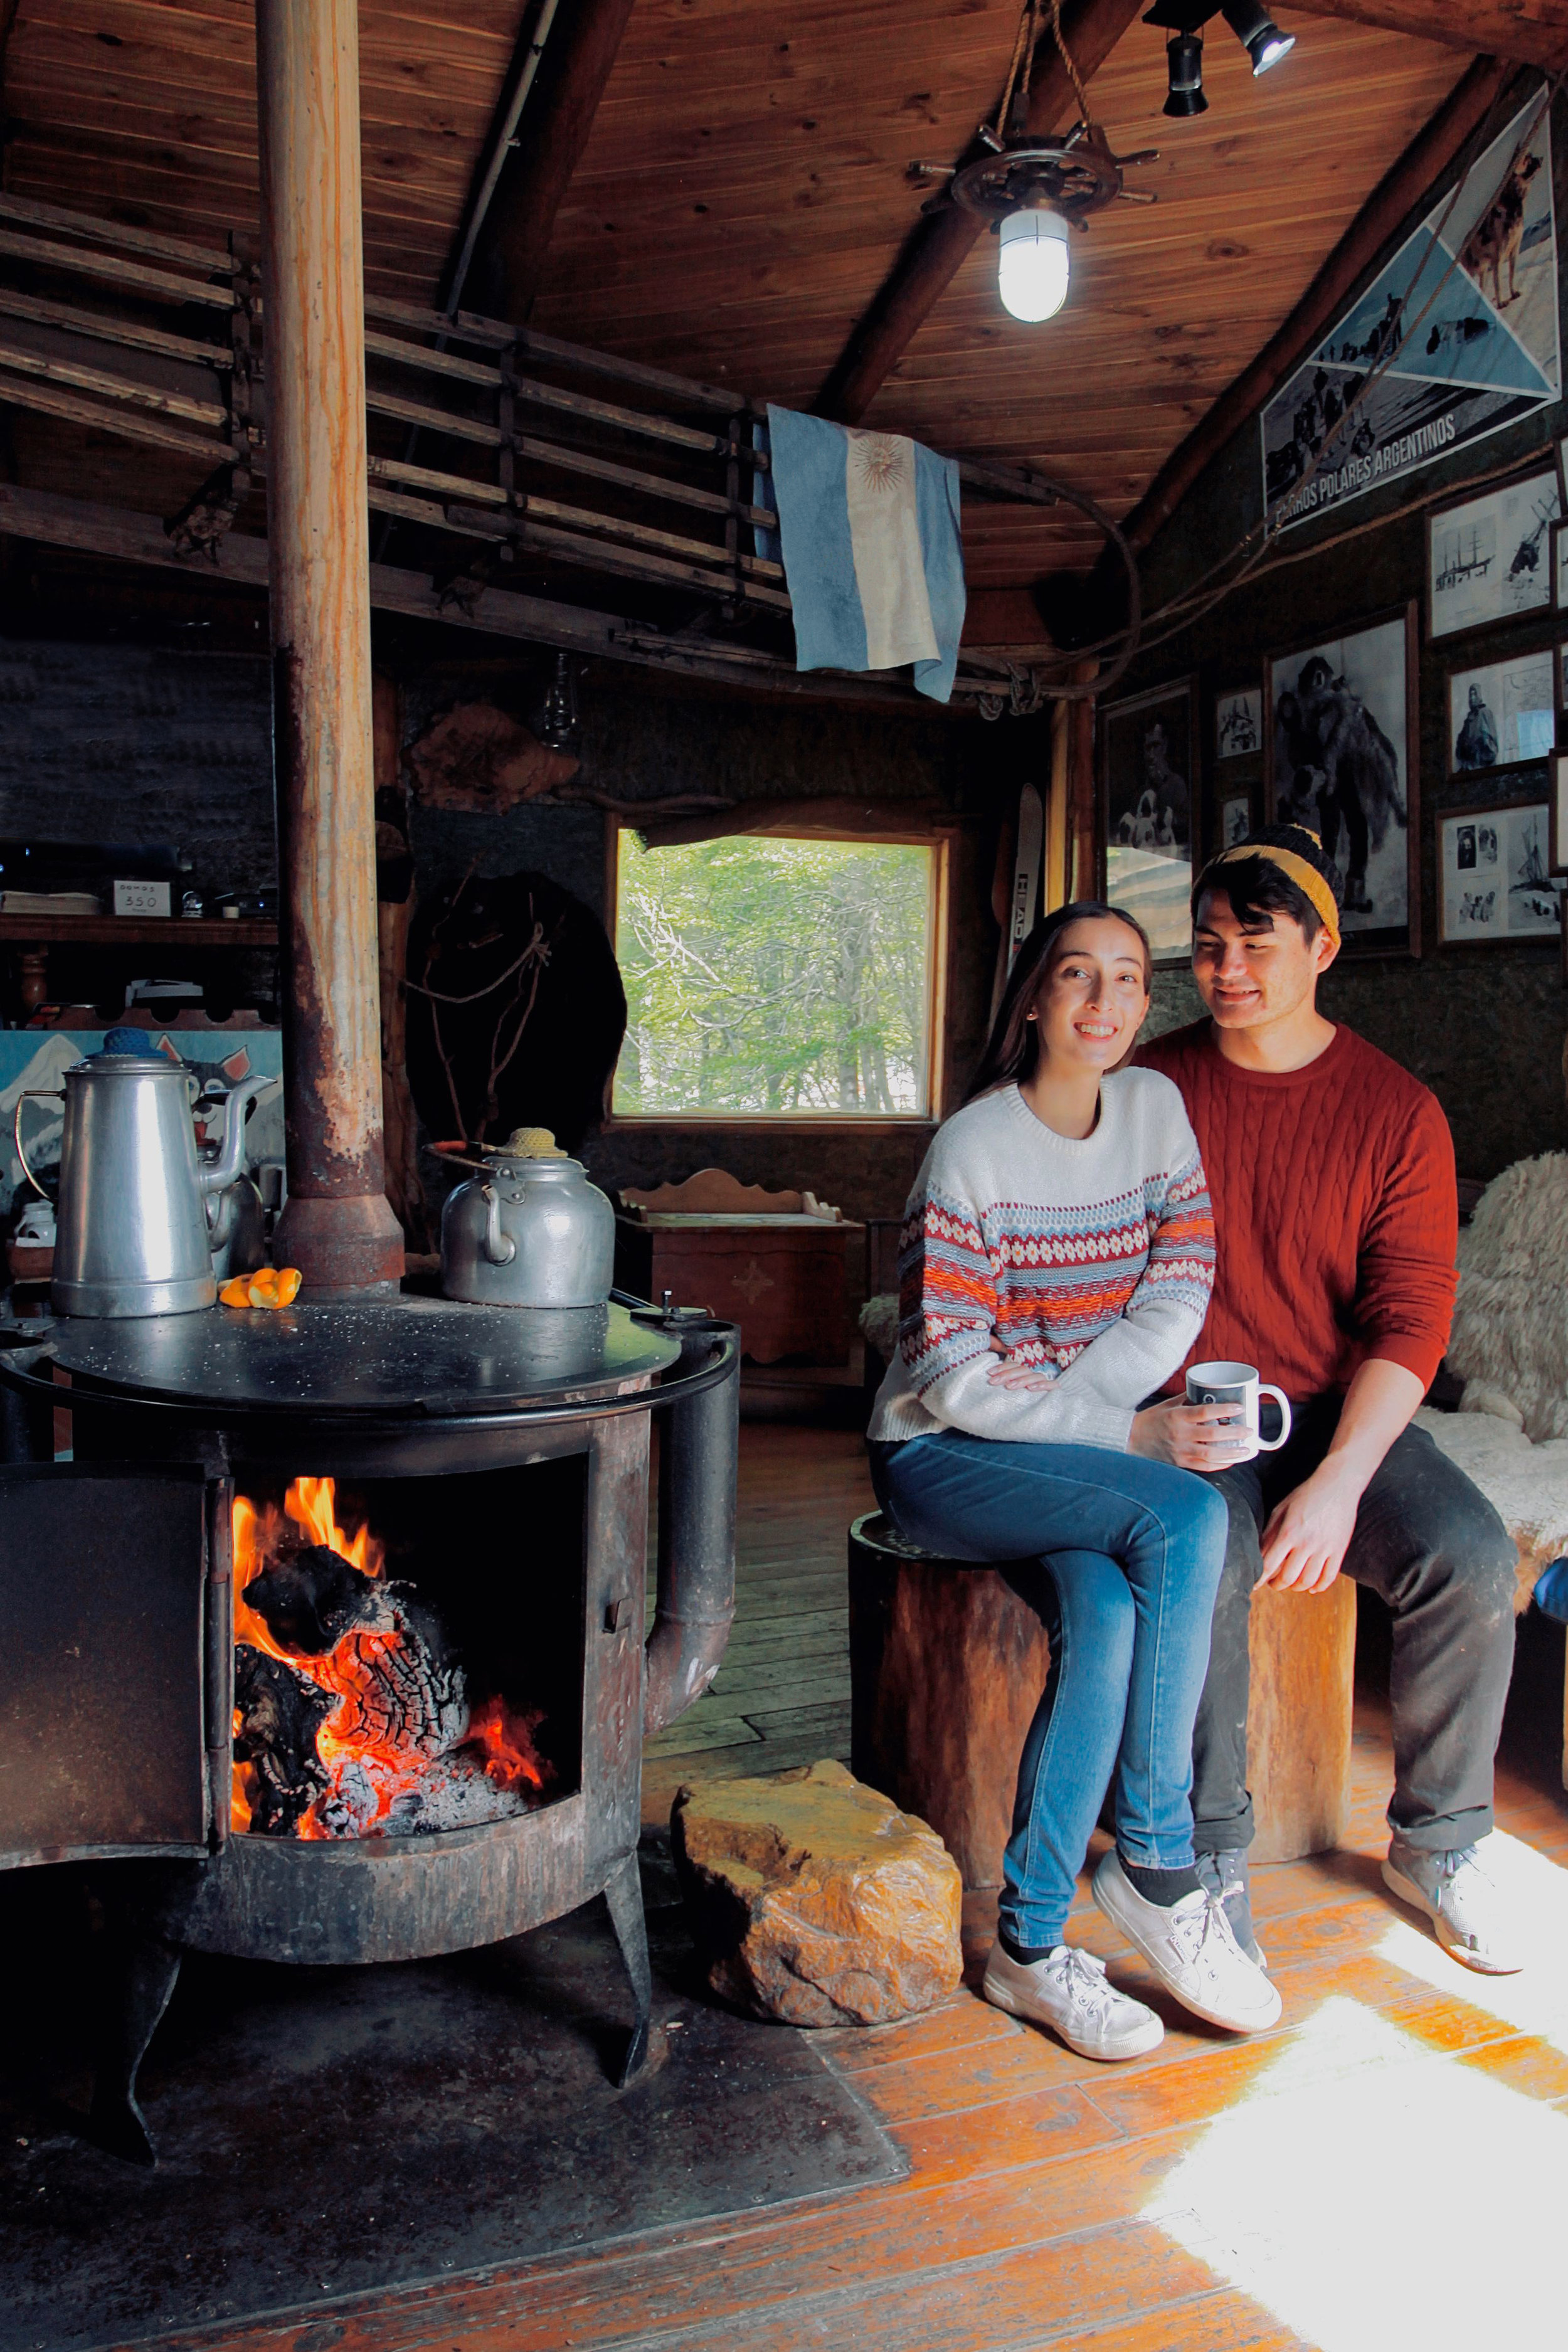 Cabin portrait and fire final.jpg